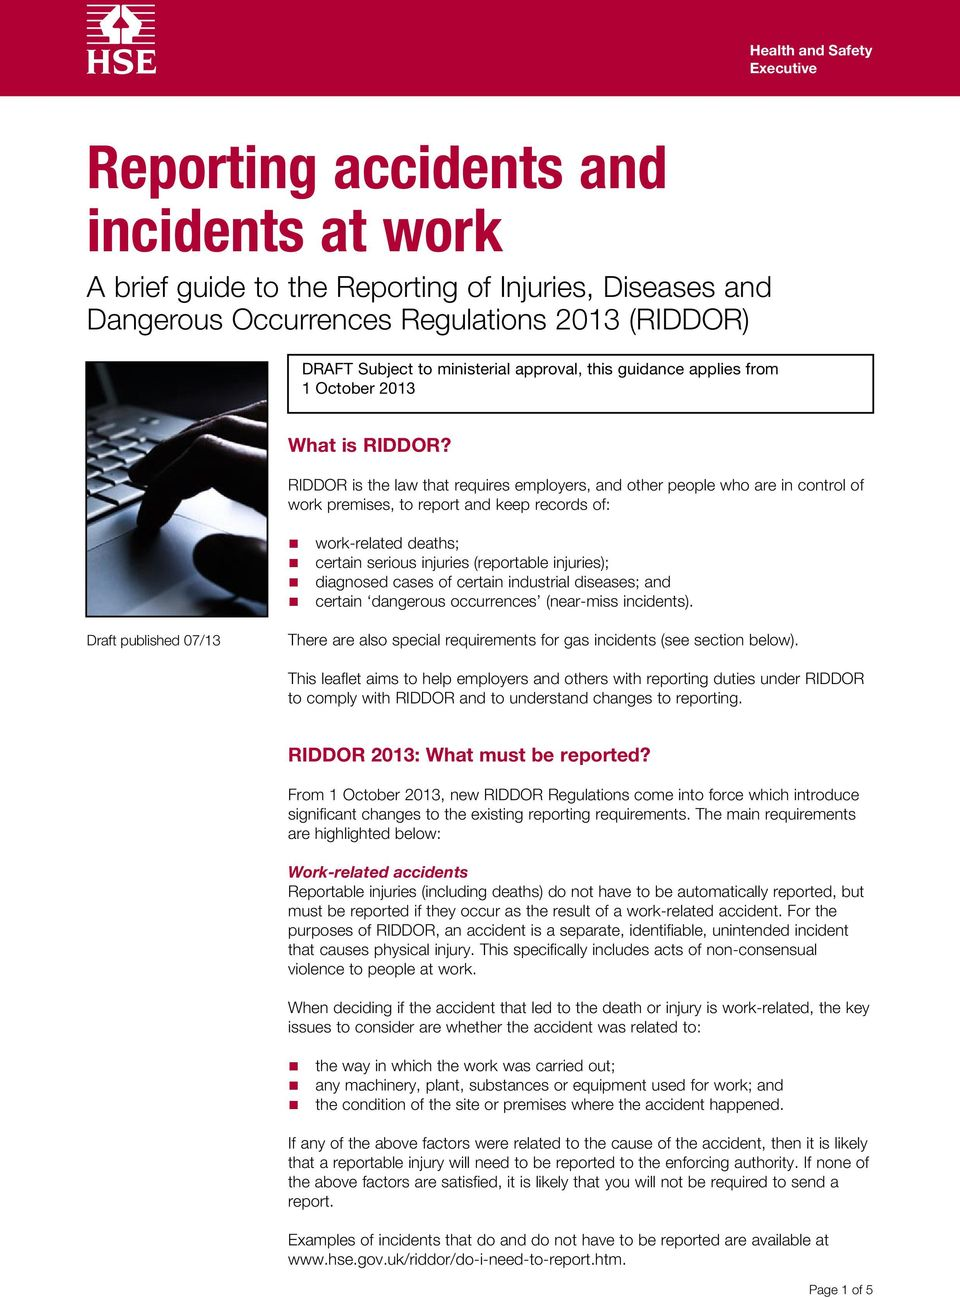 RIDDOR is the law that requires employers, and other people who are in control of work premises, to report and keep records of: work-related deaths; certain serious injuries (reportable injuries);